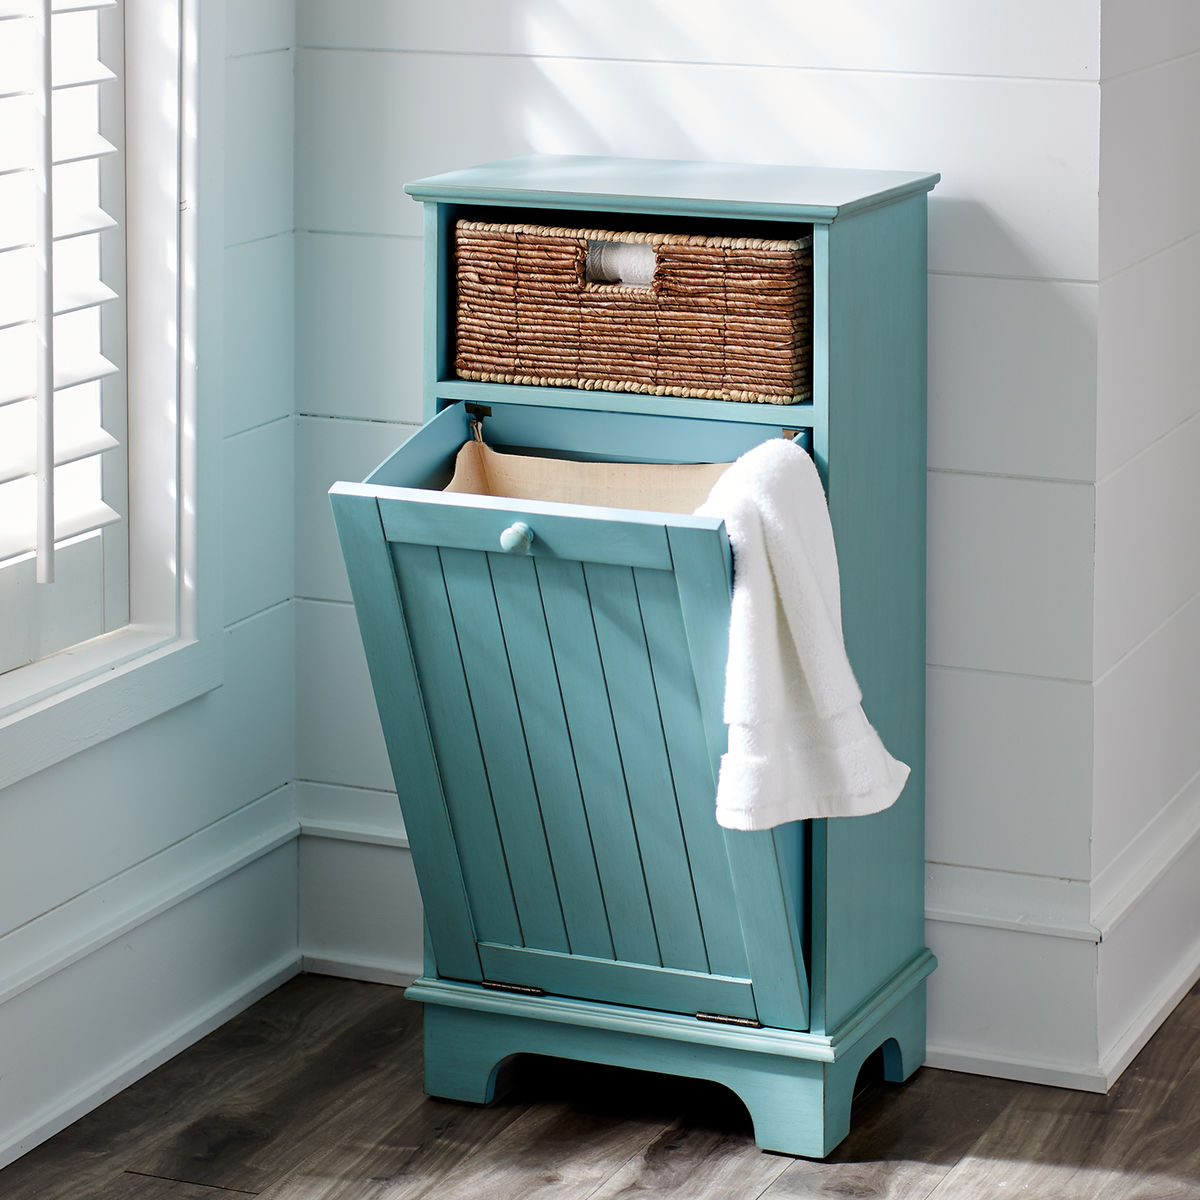 Holtom Antique Sky Blue Hamper